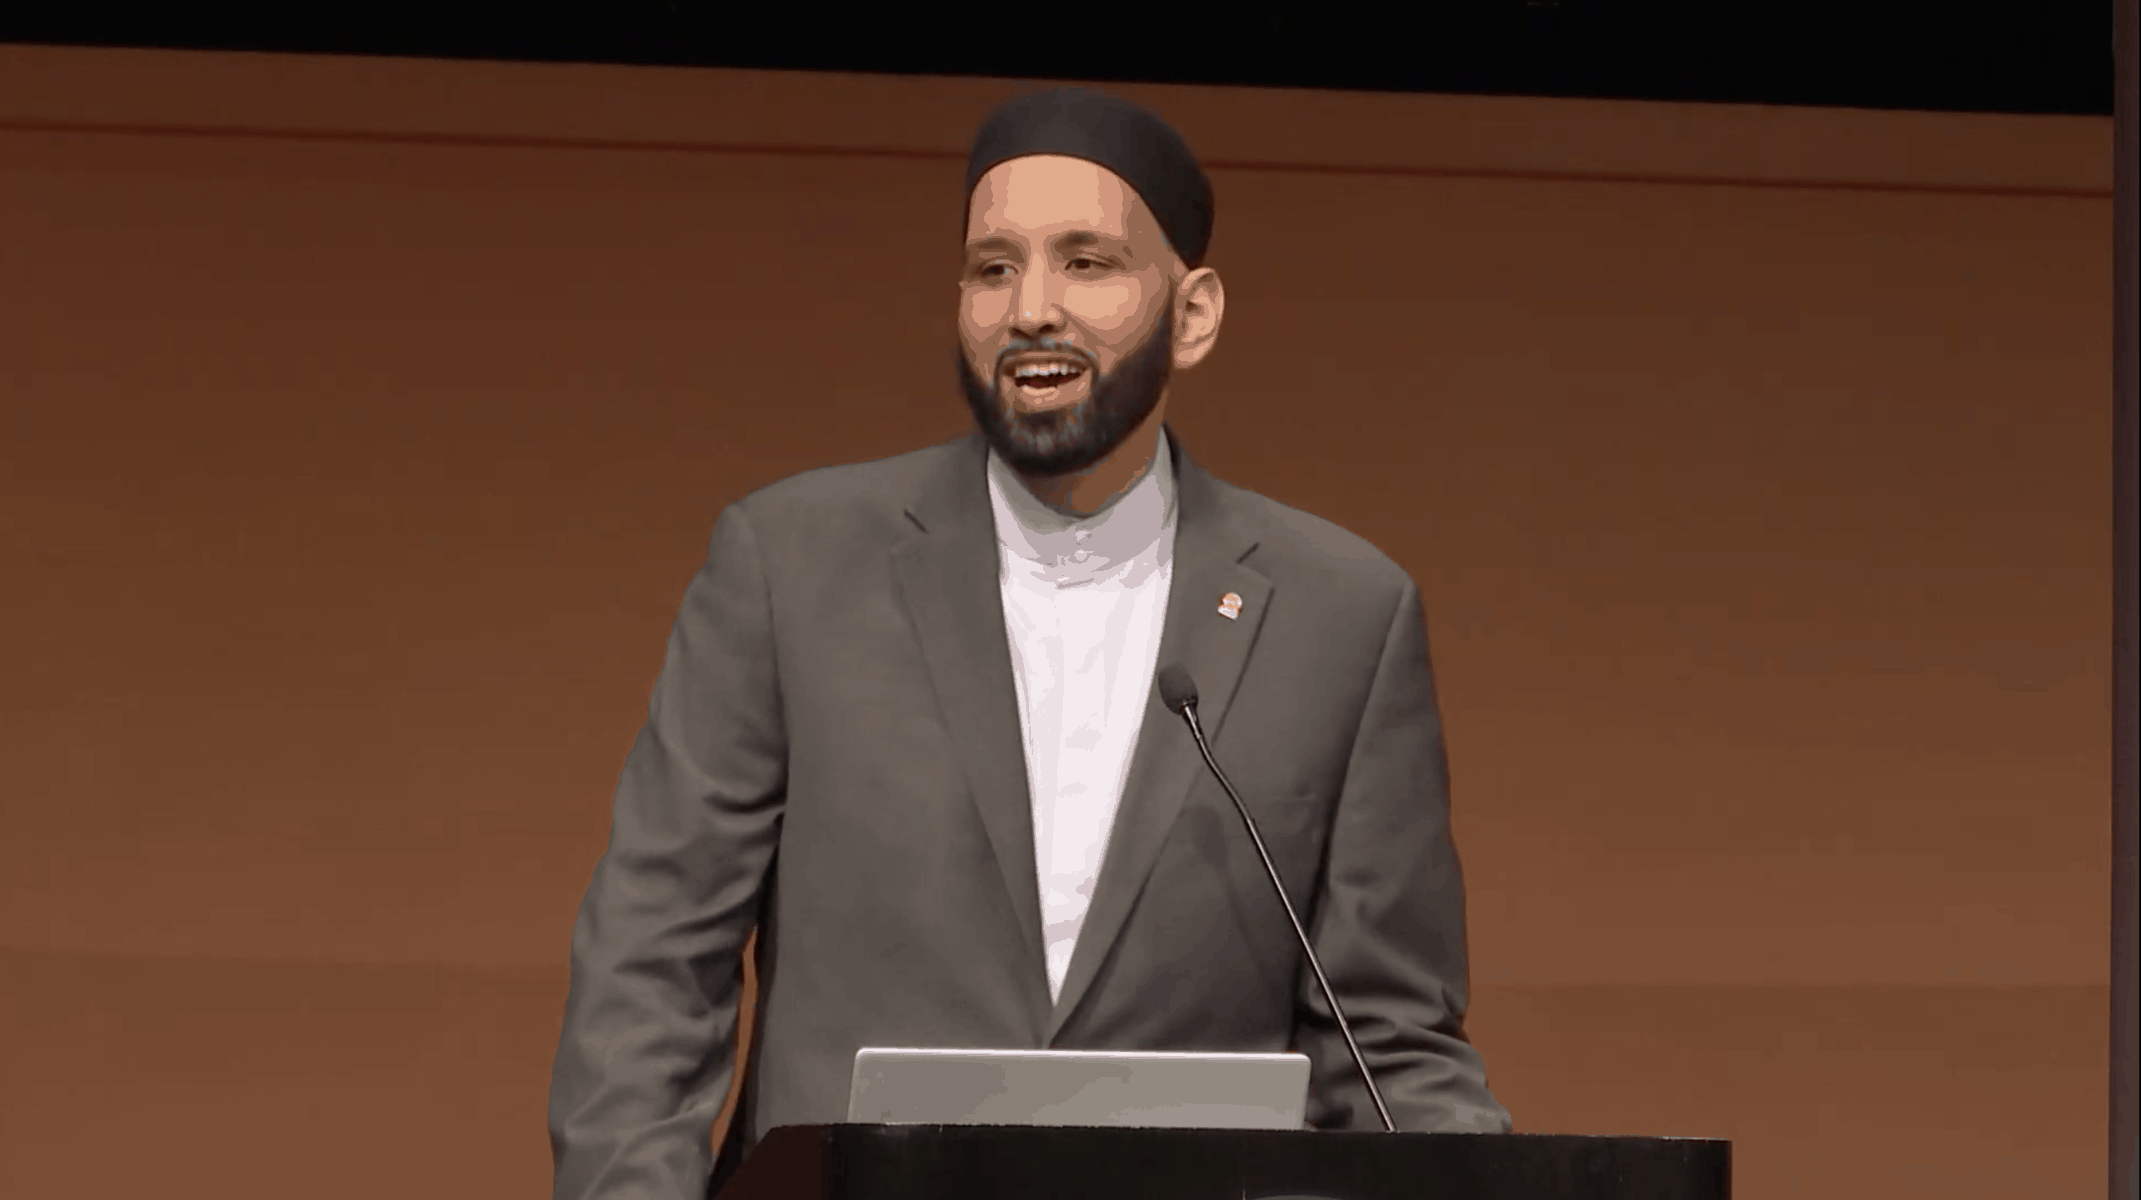 Omar Suleiman – Malcolm & Martin: Intersecting Visions of Justice